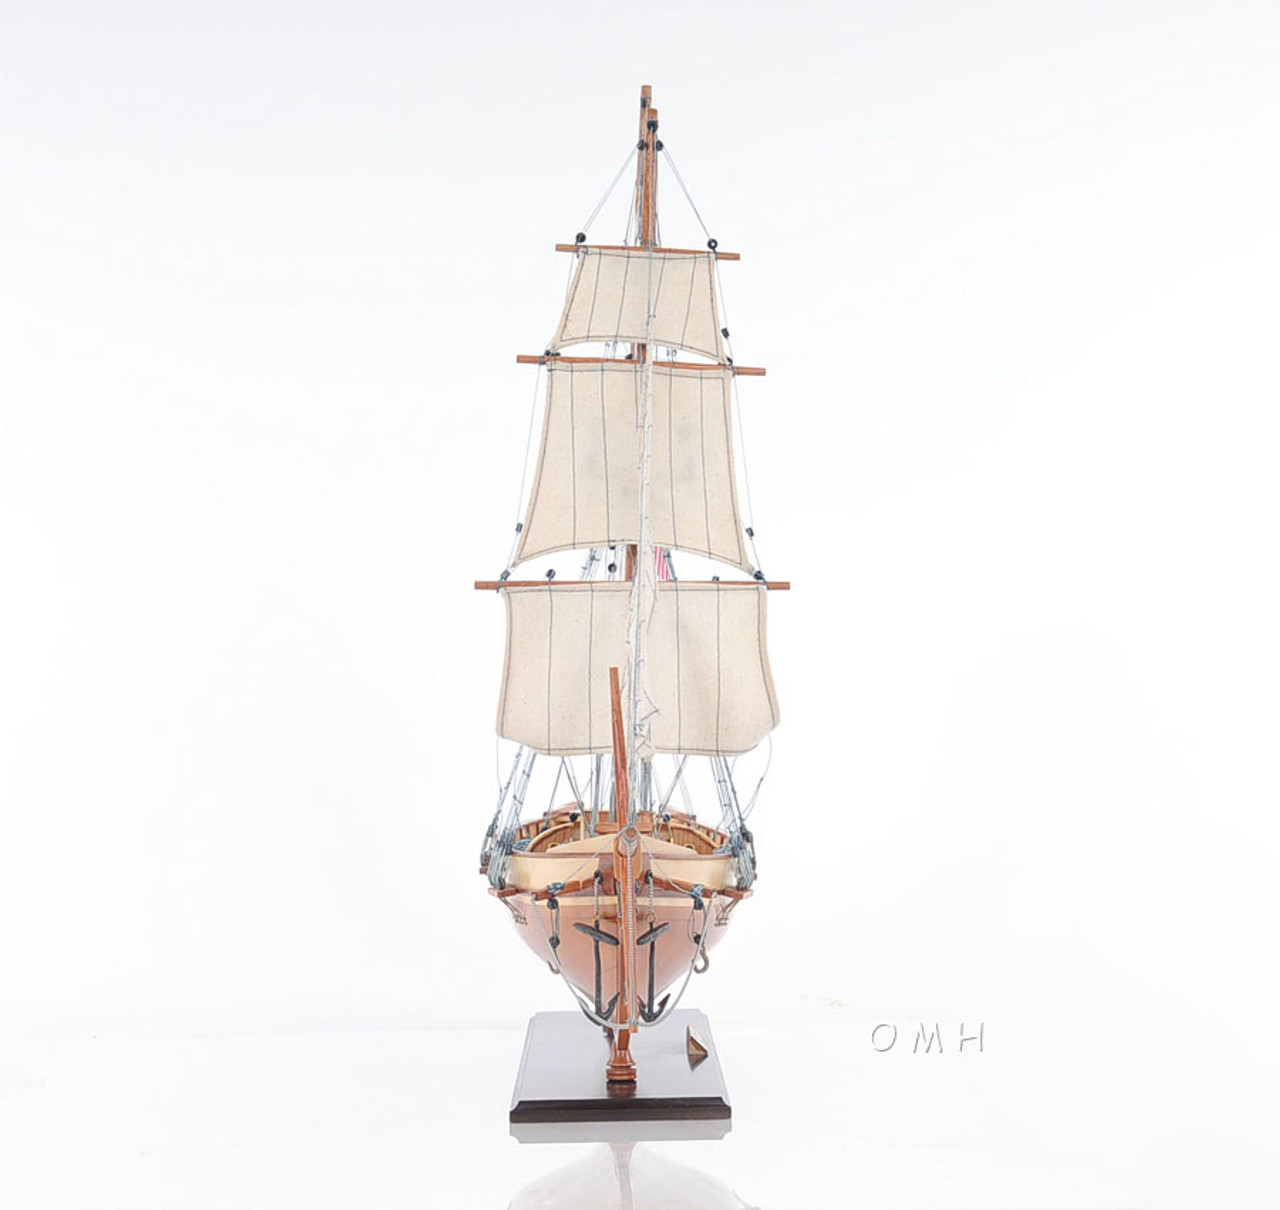 Harvey Baltimore Clipper Wood Model Privateer Ship